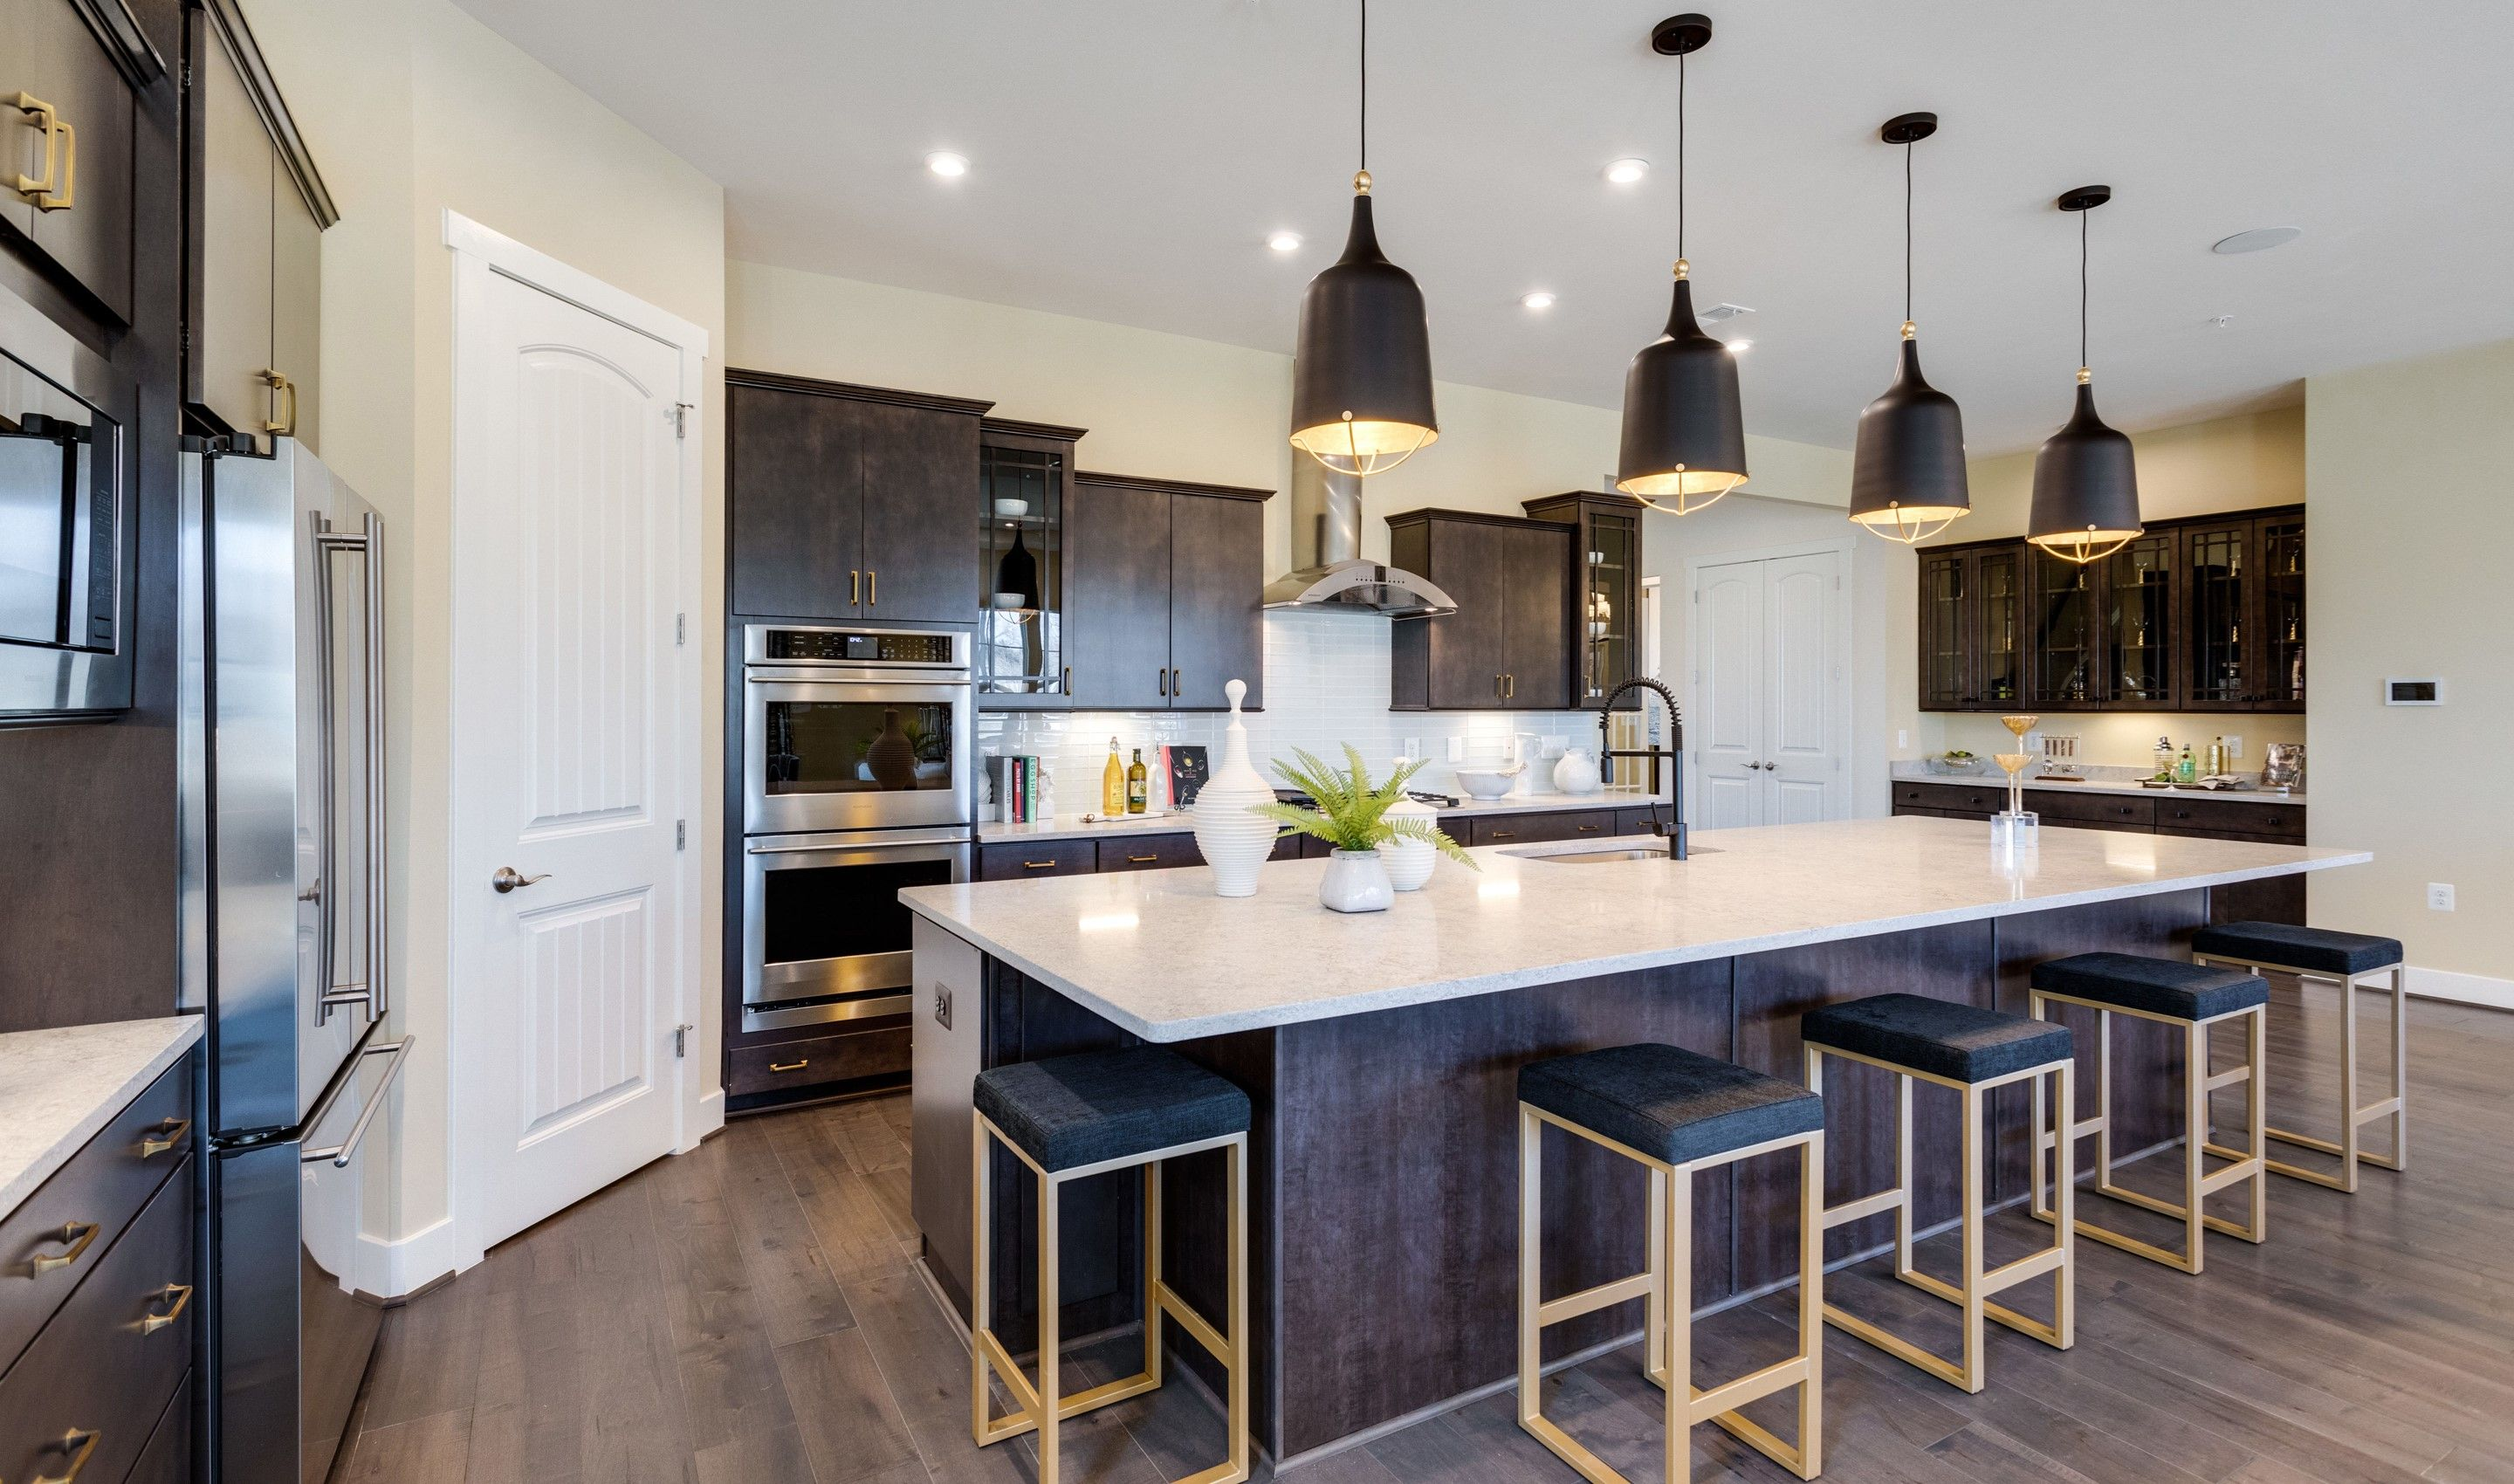 Kitchen featured in the San Sebastian By K. Hovnanian's® Four Seasons in Eastern Shore, MD